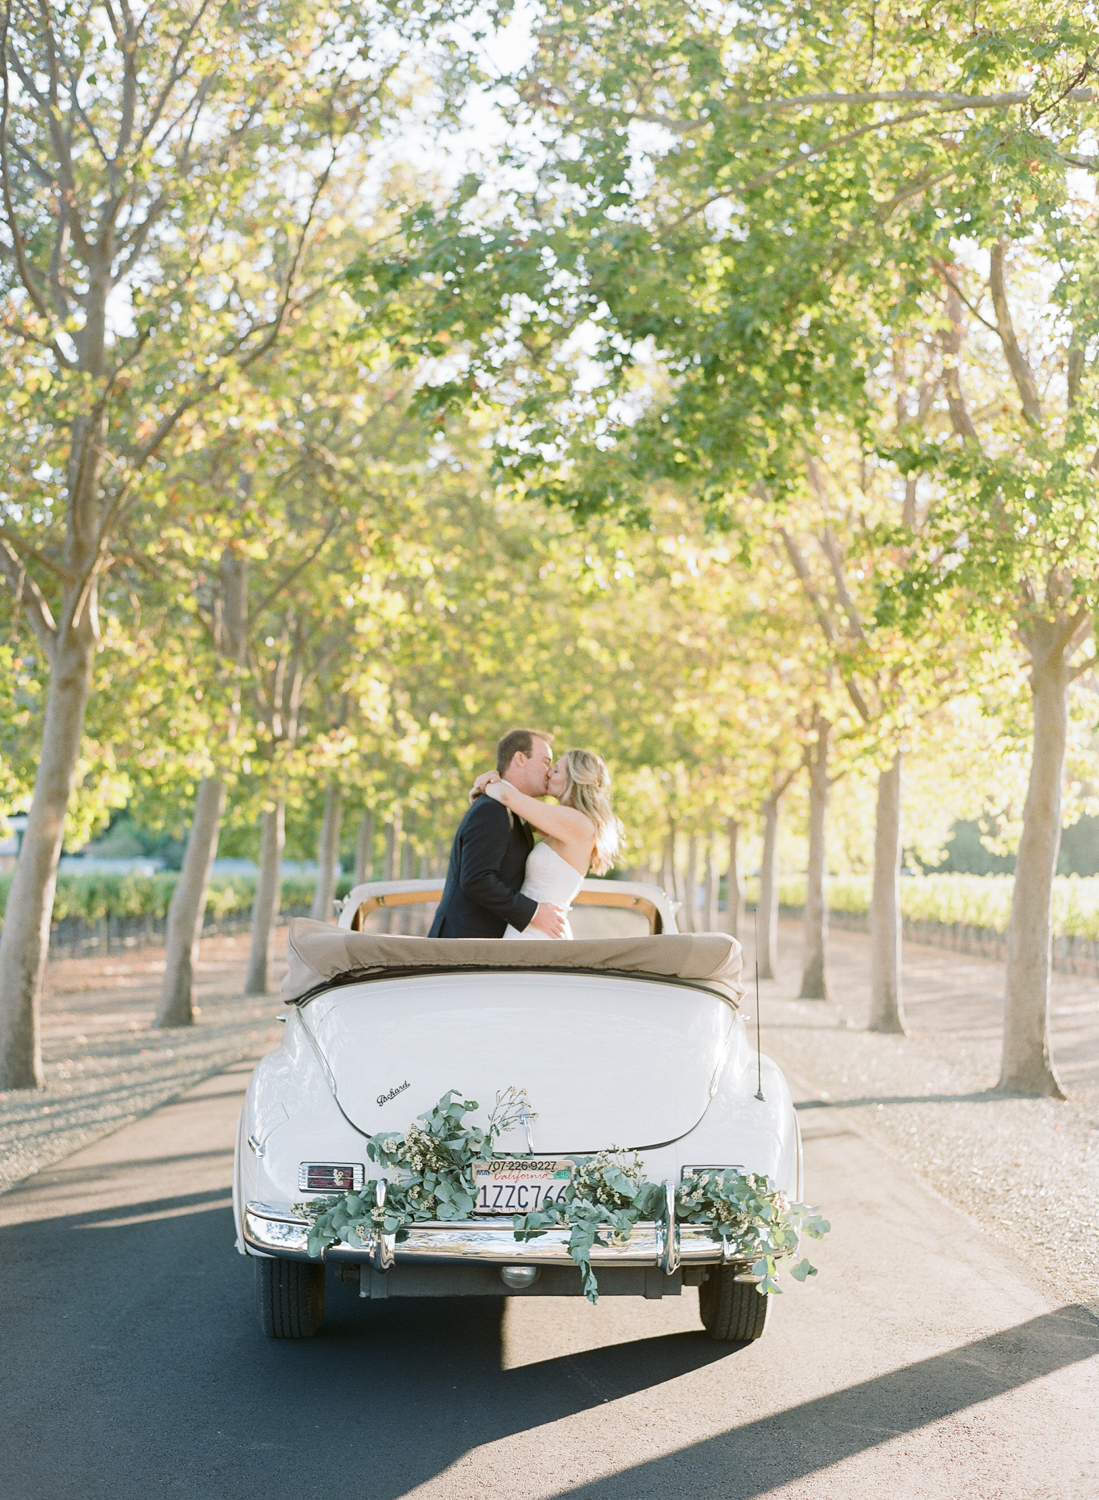 Bride and groom kiss in a vintage convertible, decorated with eucalyptus branches; Sylvie Gil Photography